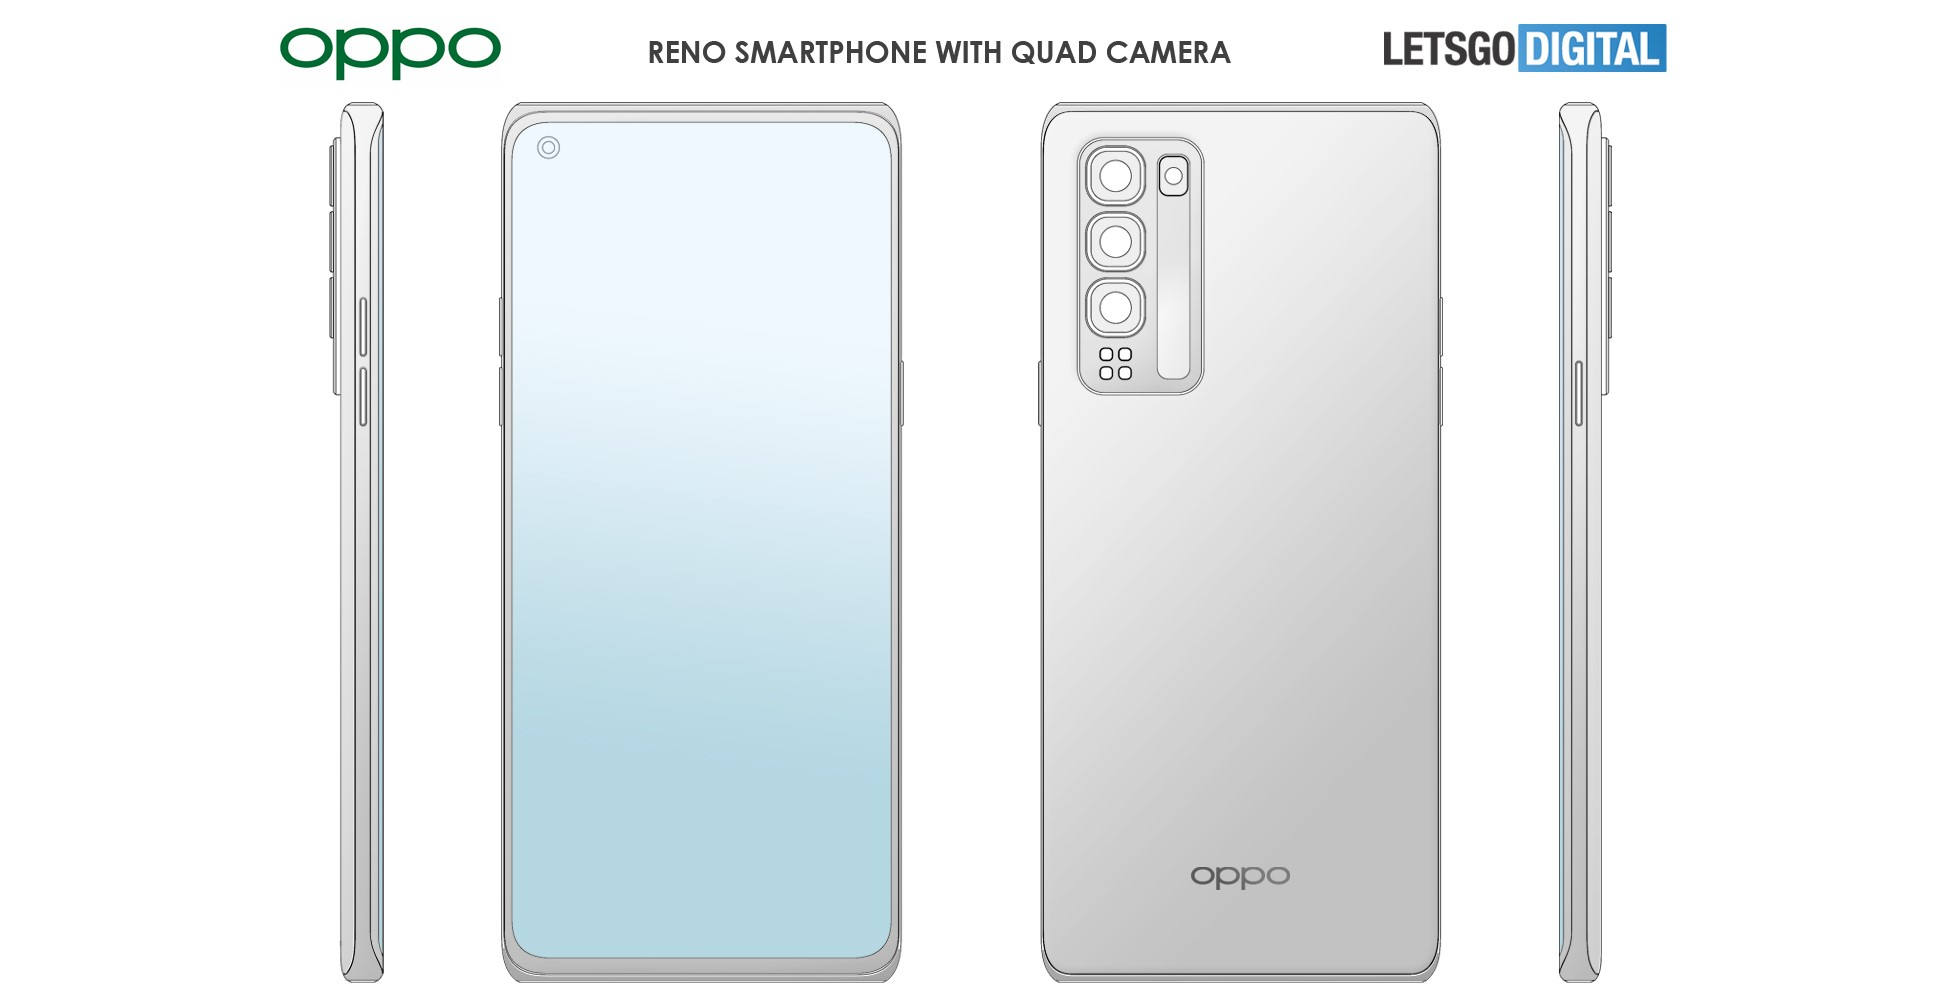 OPPO's latest patent might reveal its next-gen smartphone design language ahead of time - Notebookcheck.net